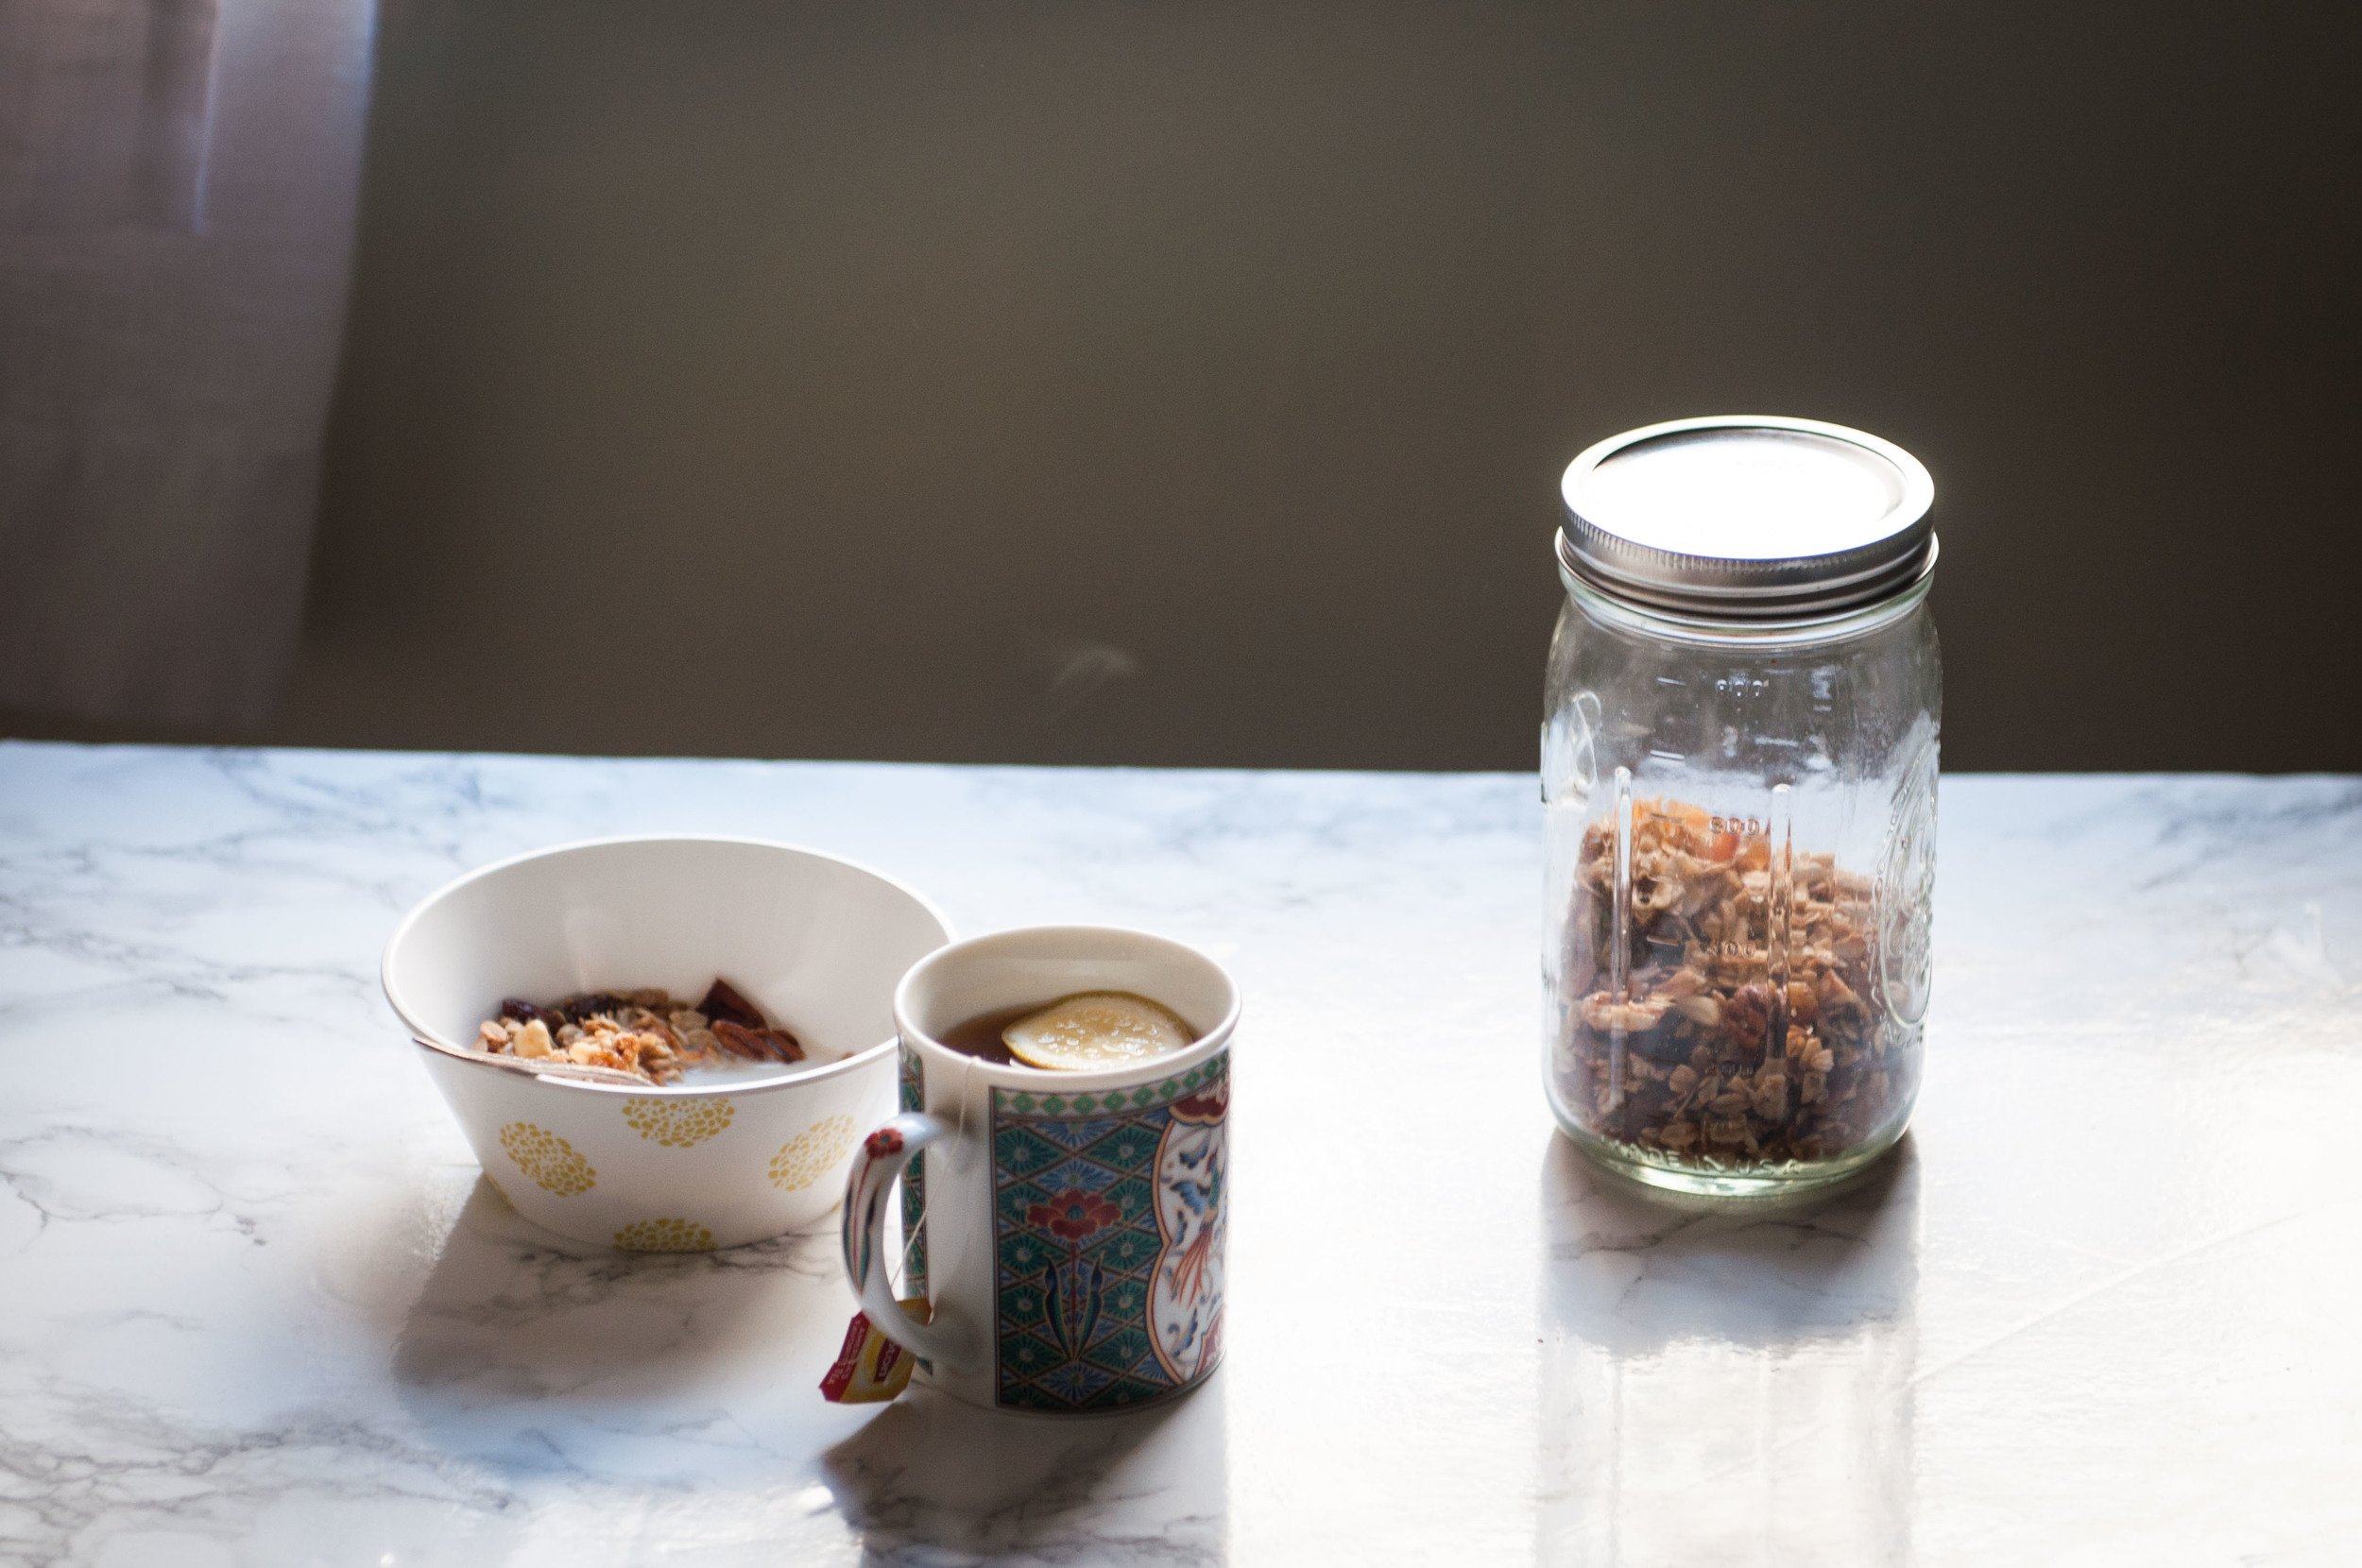 The morning light is magical and a bowl of granola and hot cuppa while looking out the window into the bursting garden (and neighbors mornings!) is perfect for making plans and dreaming...